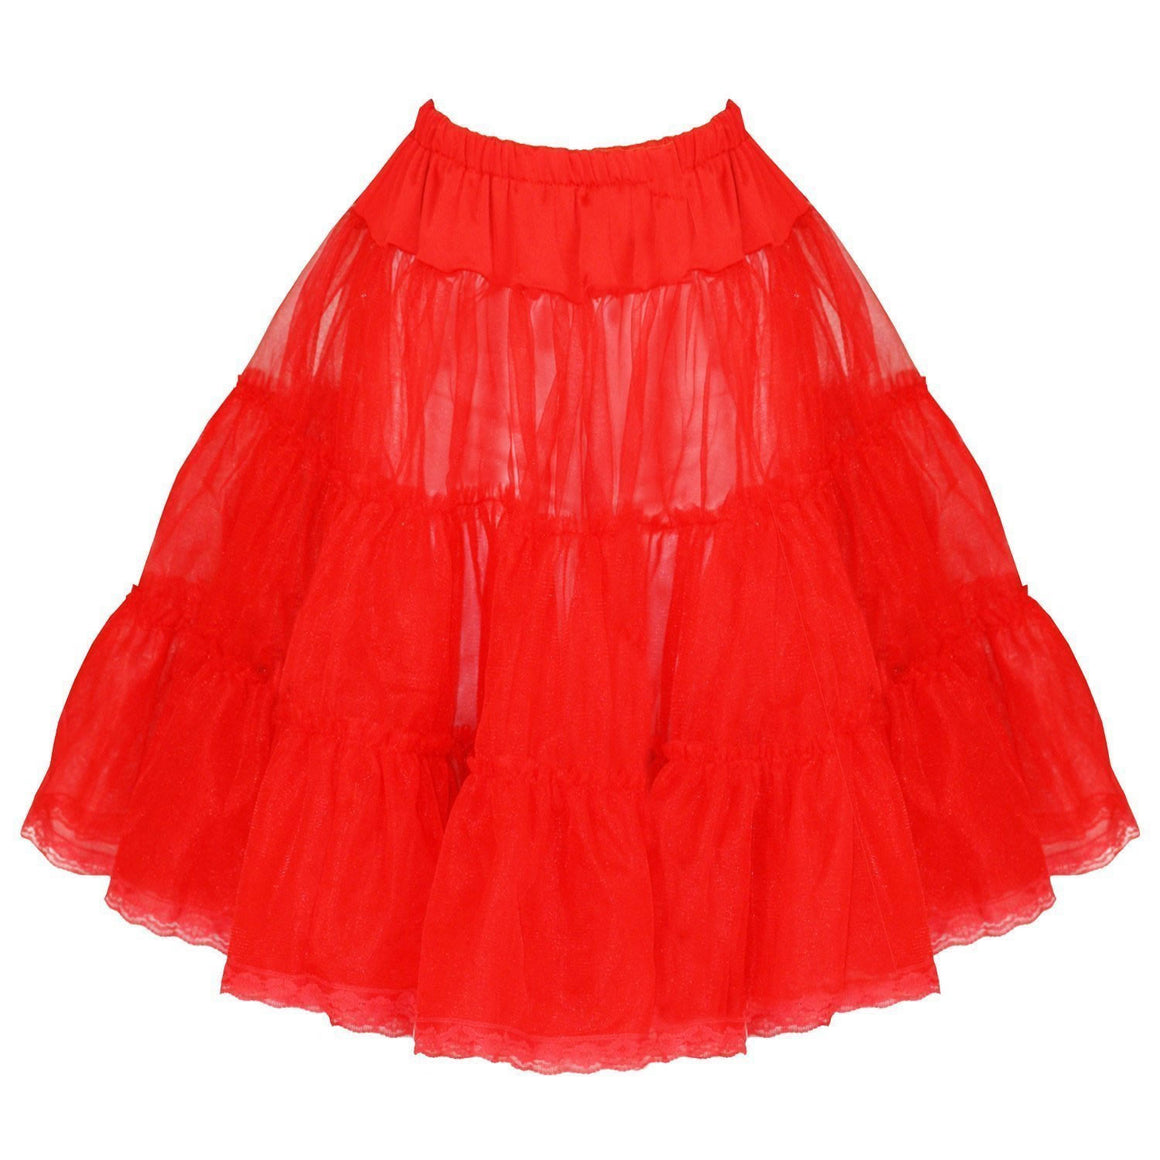 Red Frill Tutu 50s Rockabilly Wedding Petticoat Skirt